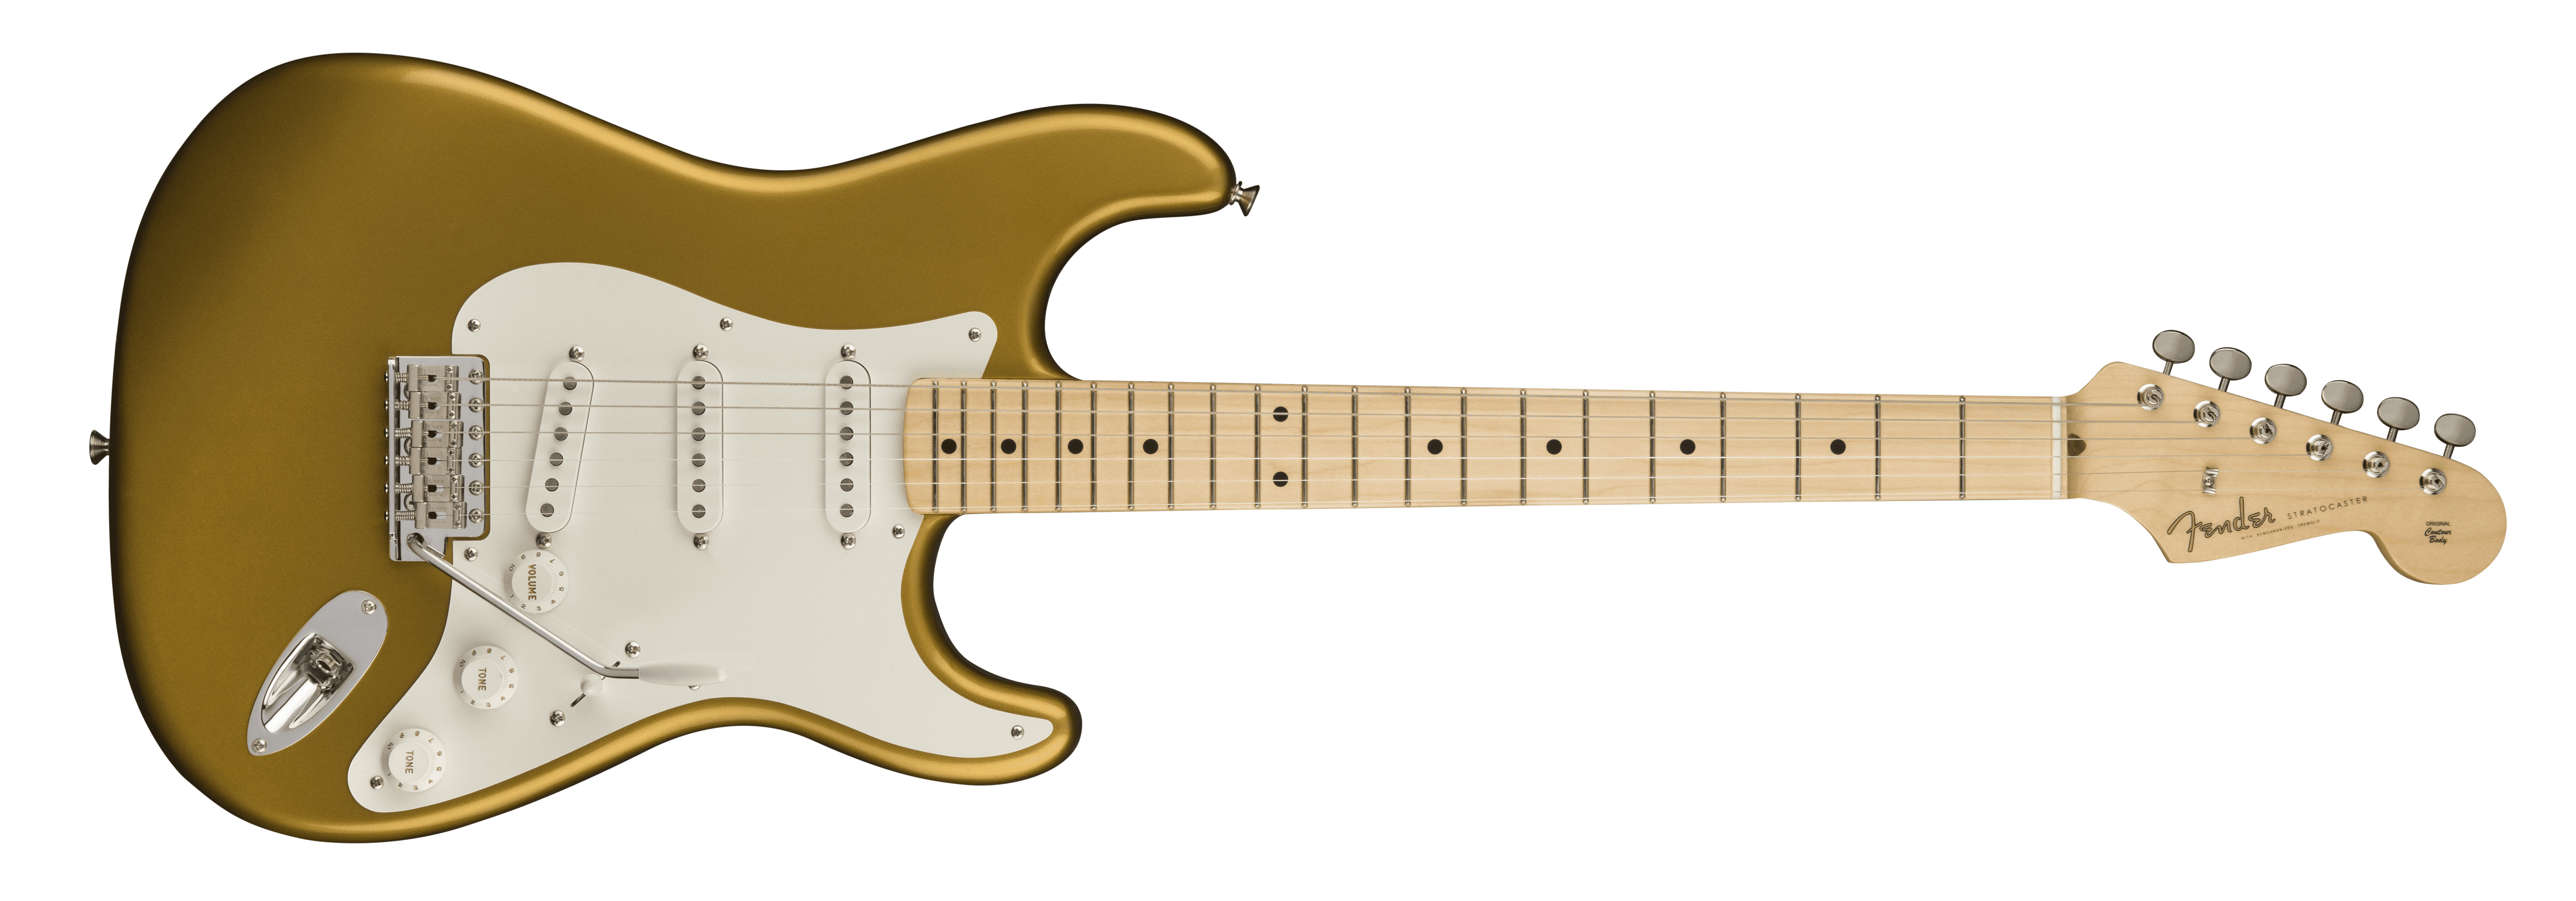 NAMM NEWS 2018: Fender American Original Series - AMAZONA.de